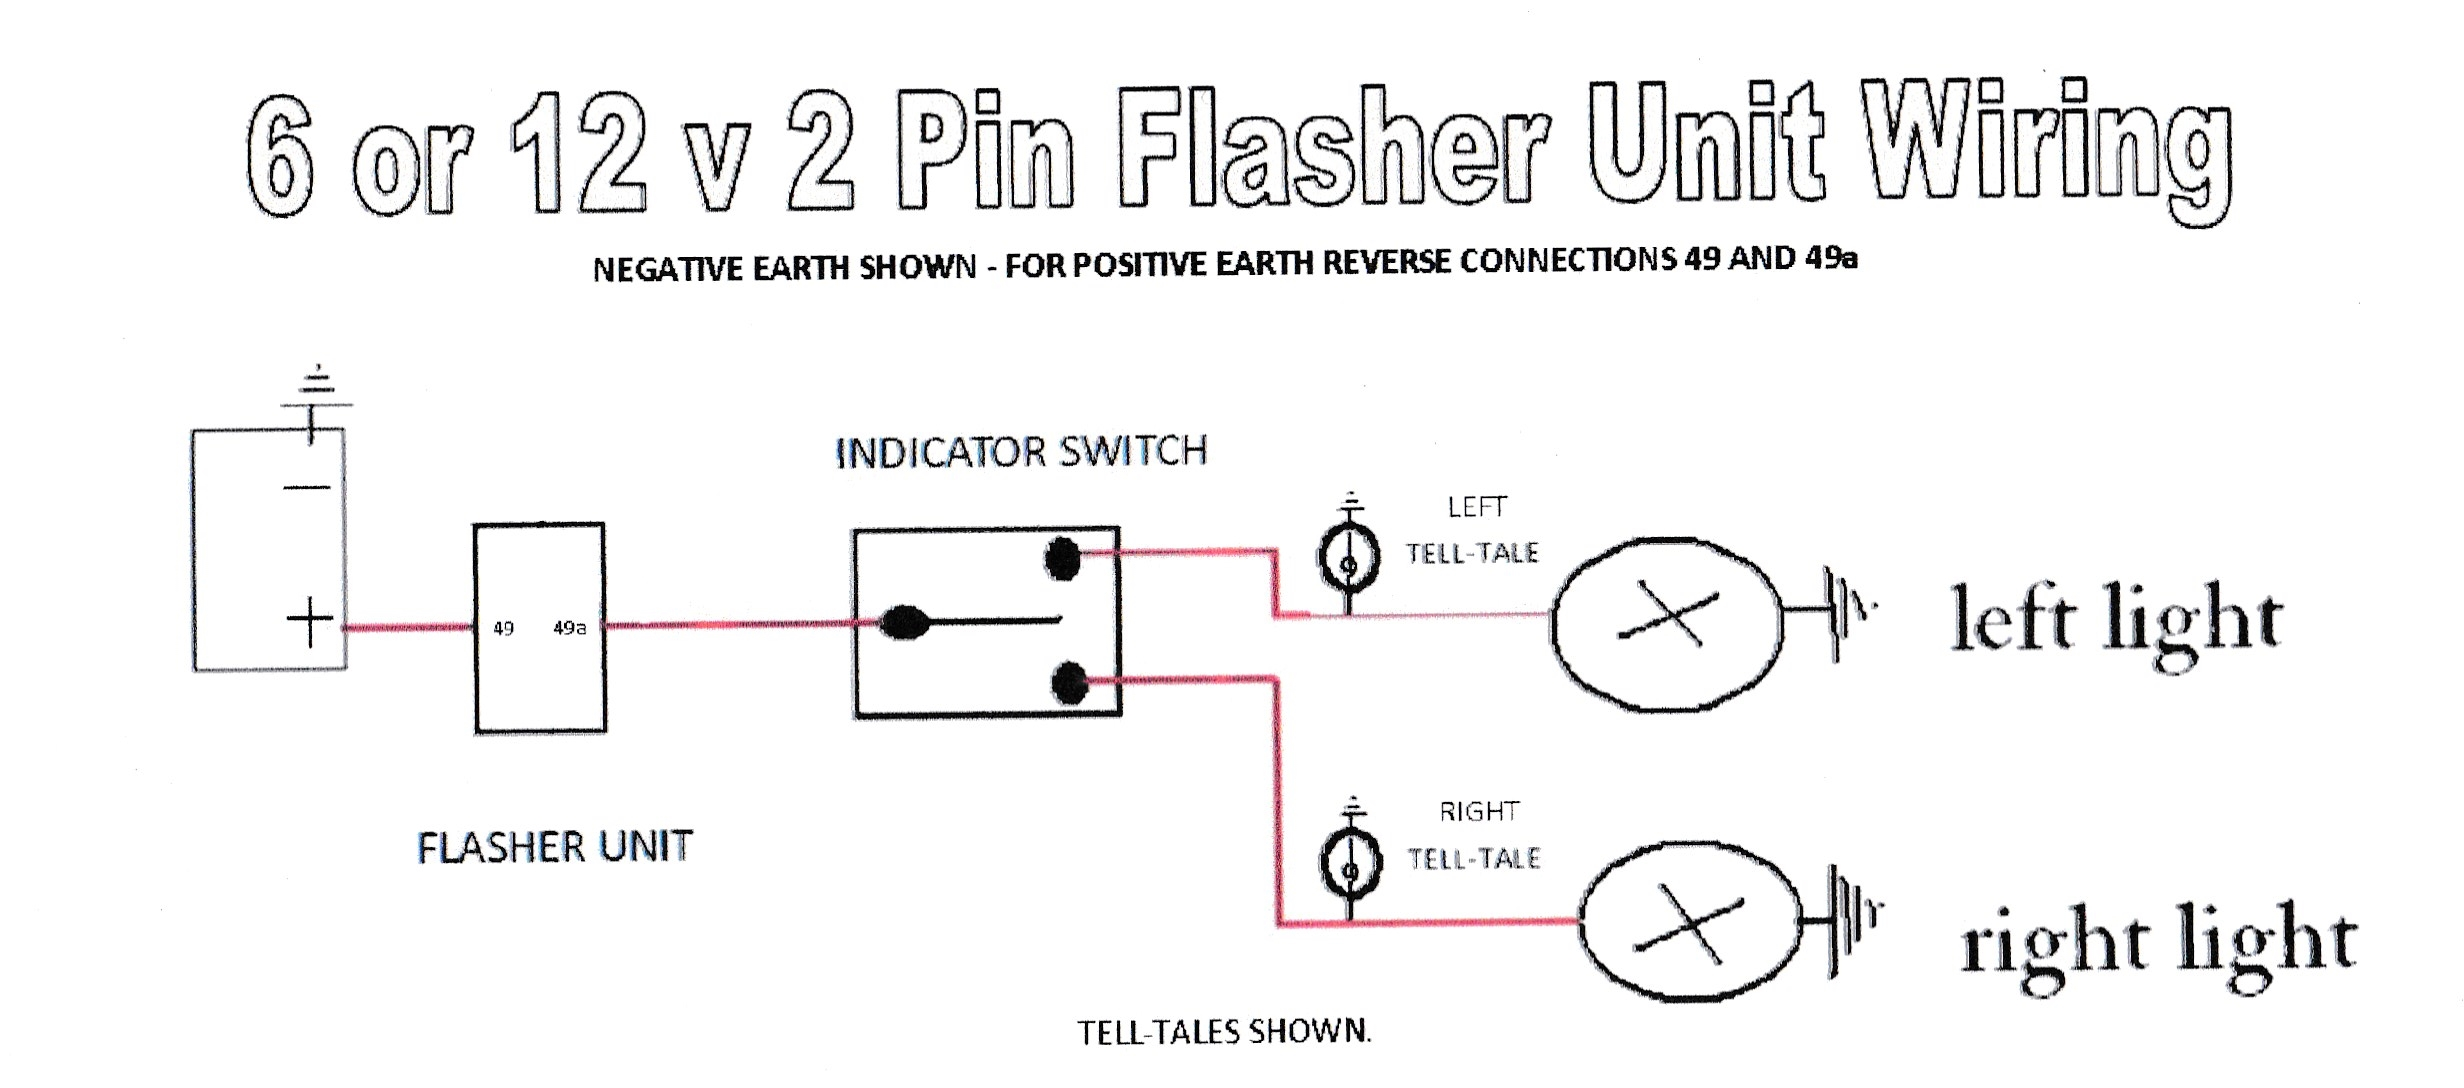 IMG_20150323_0001_NEW wiring diagrams to assist you with connecting up flasher unit wiring diagram at eliteediting.co